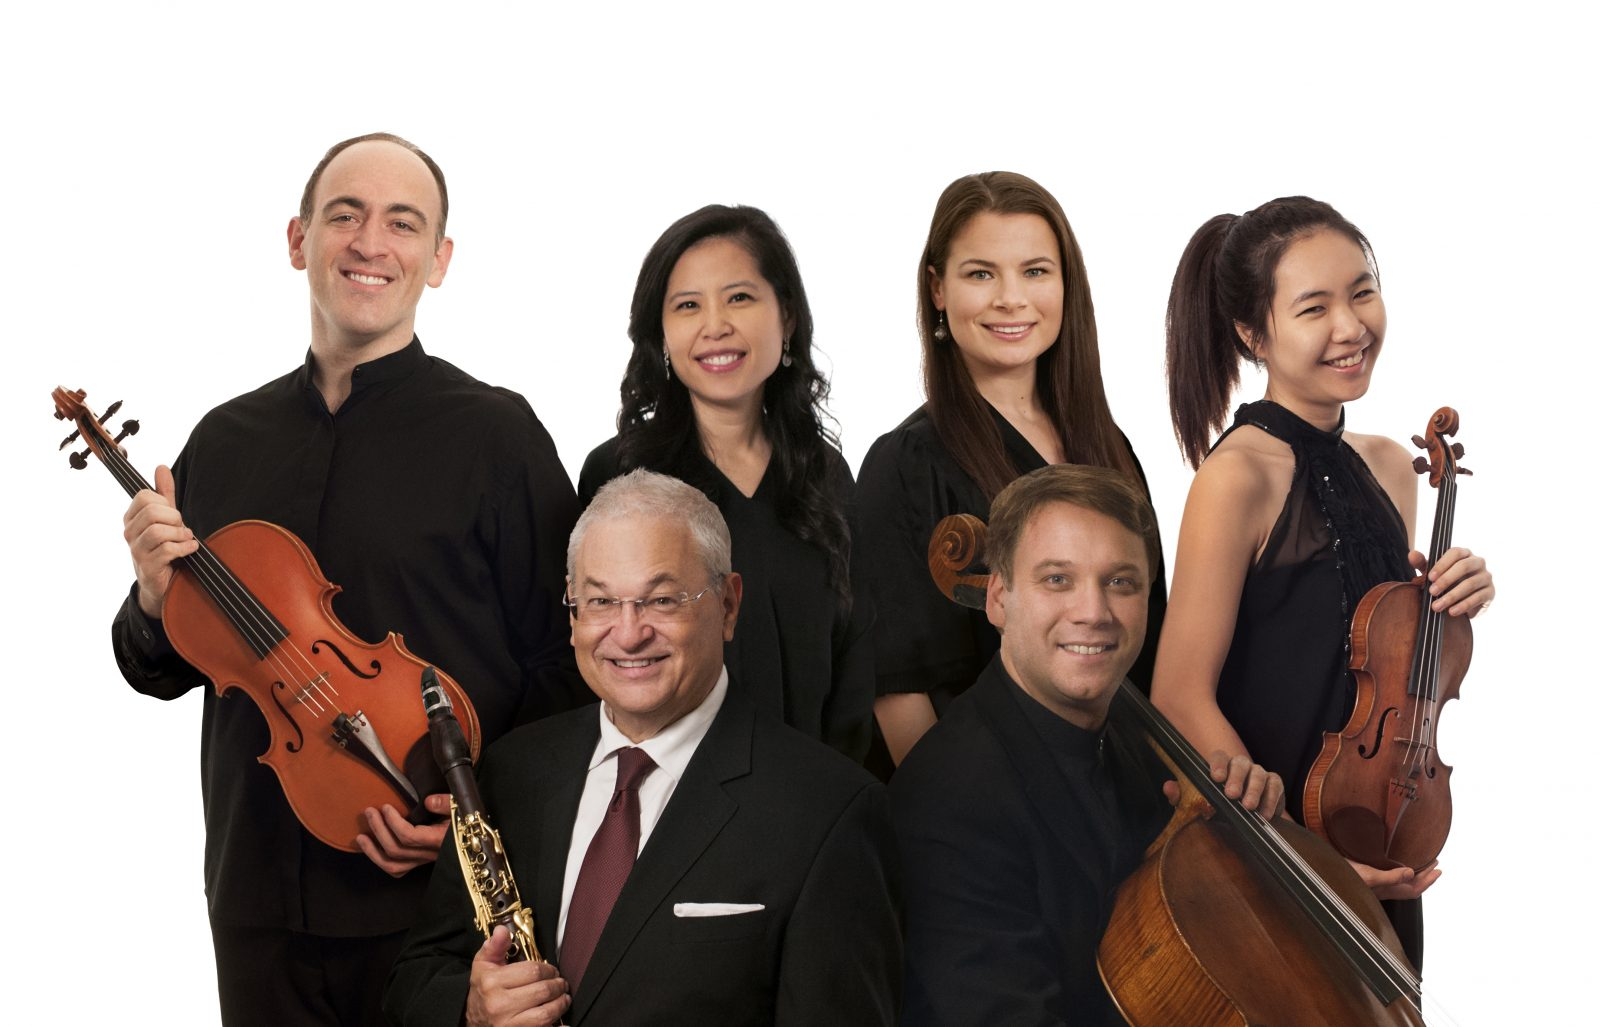 Chamber Music Society of Lincoln Center closed out the Buffalo Chamber Music season.